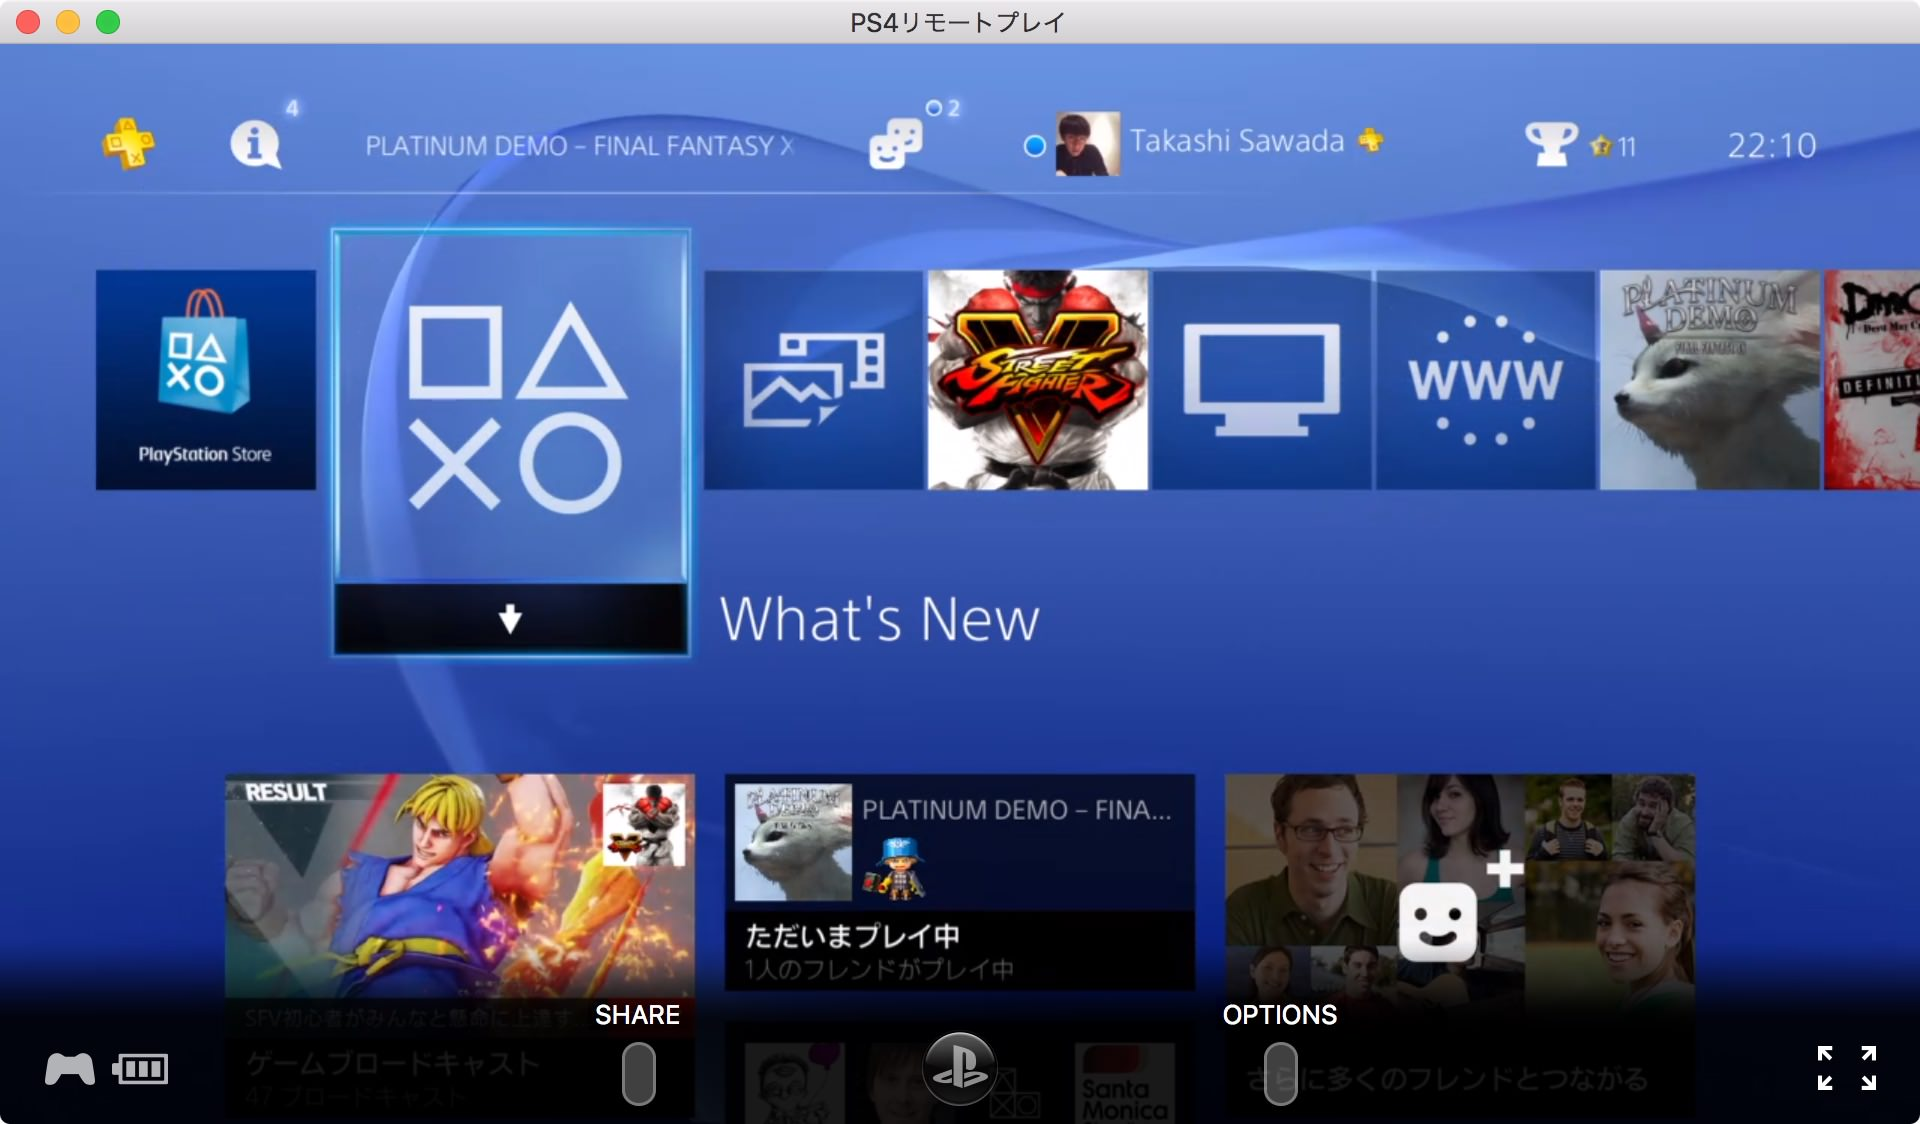 How to play playstation 4 game by remoto play from pc 11